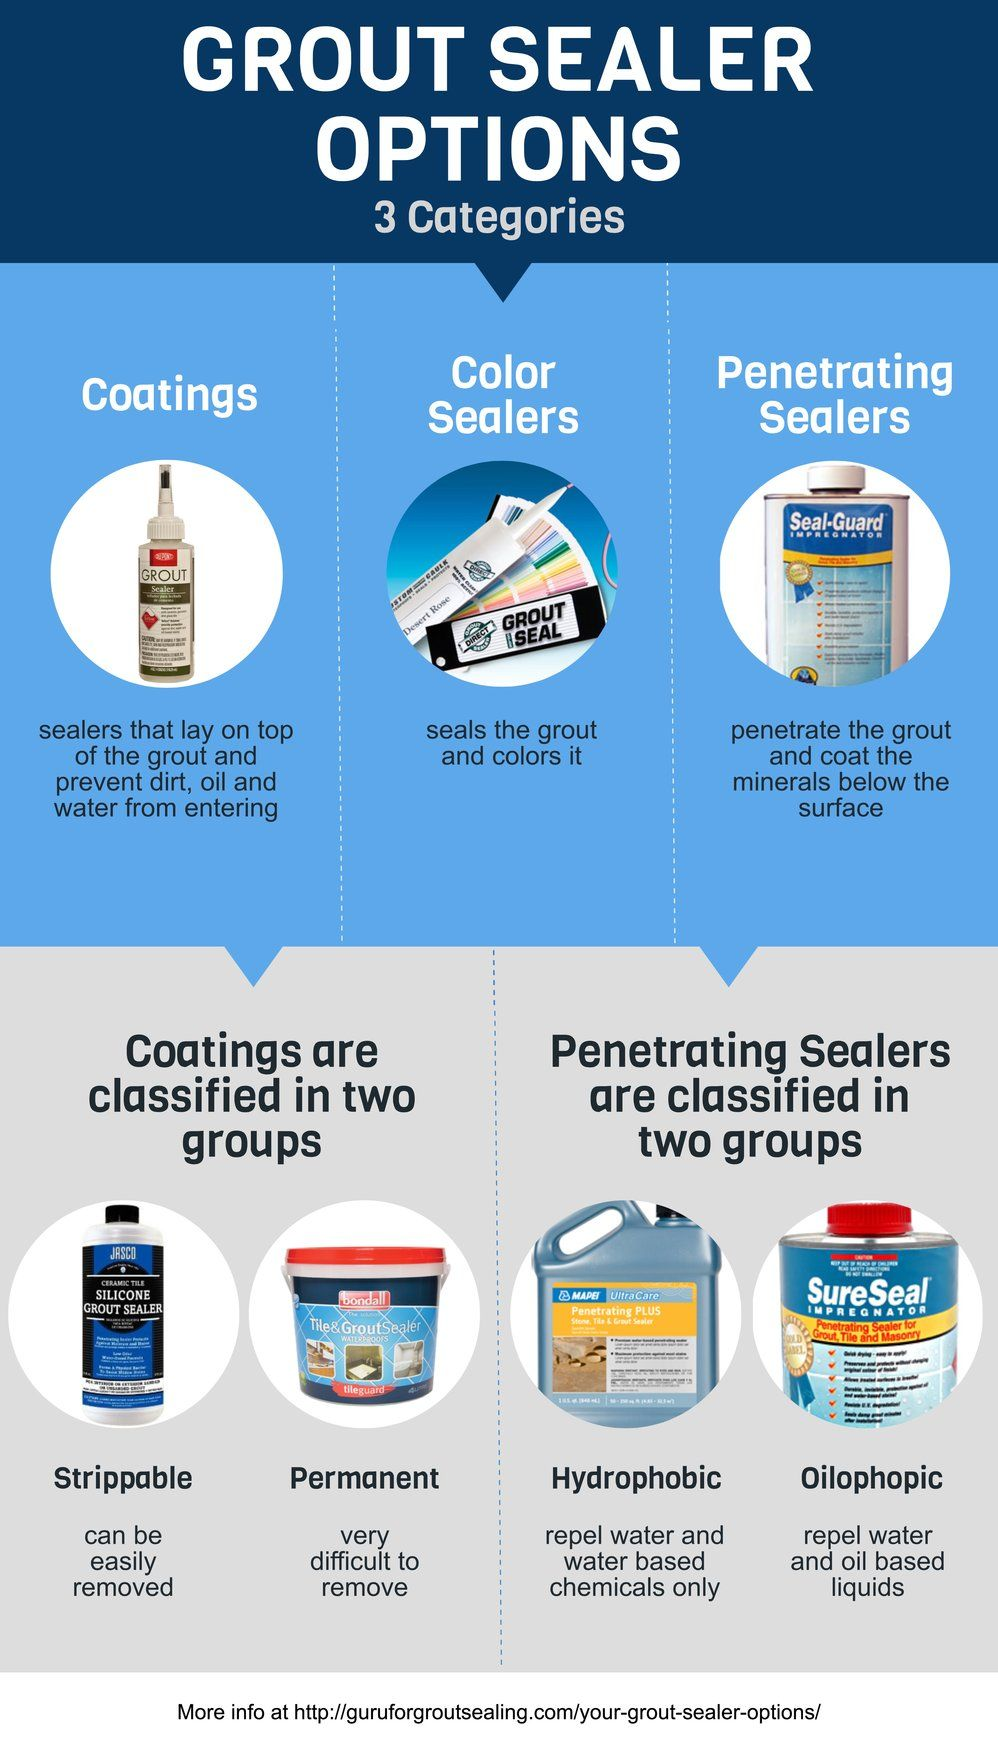 grout sealers Grout sealer, Best grout sealer, Sealing grout